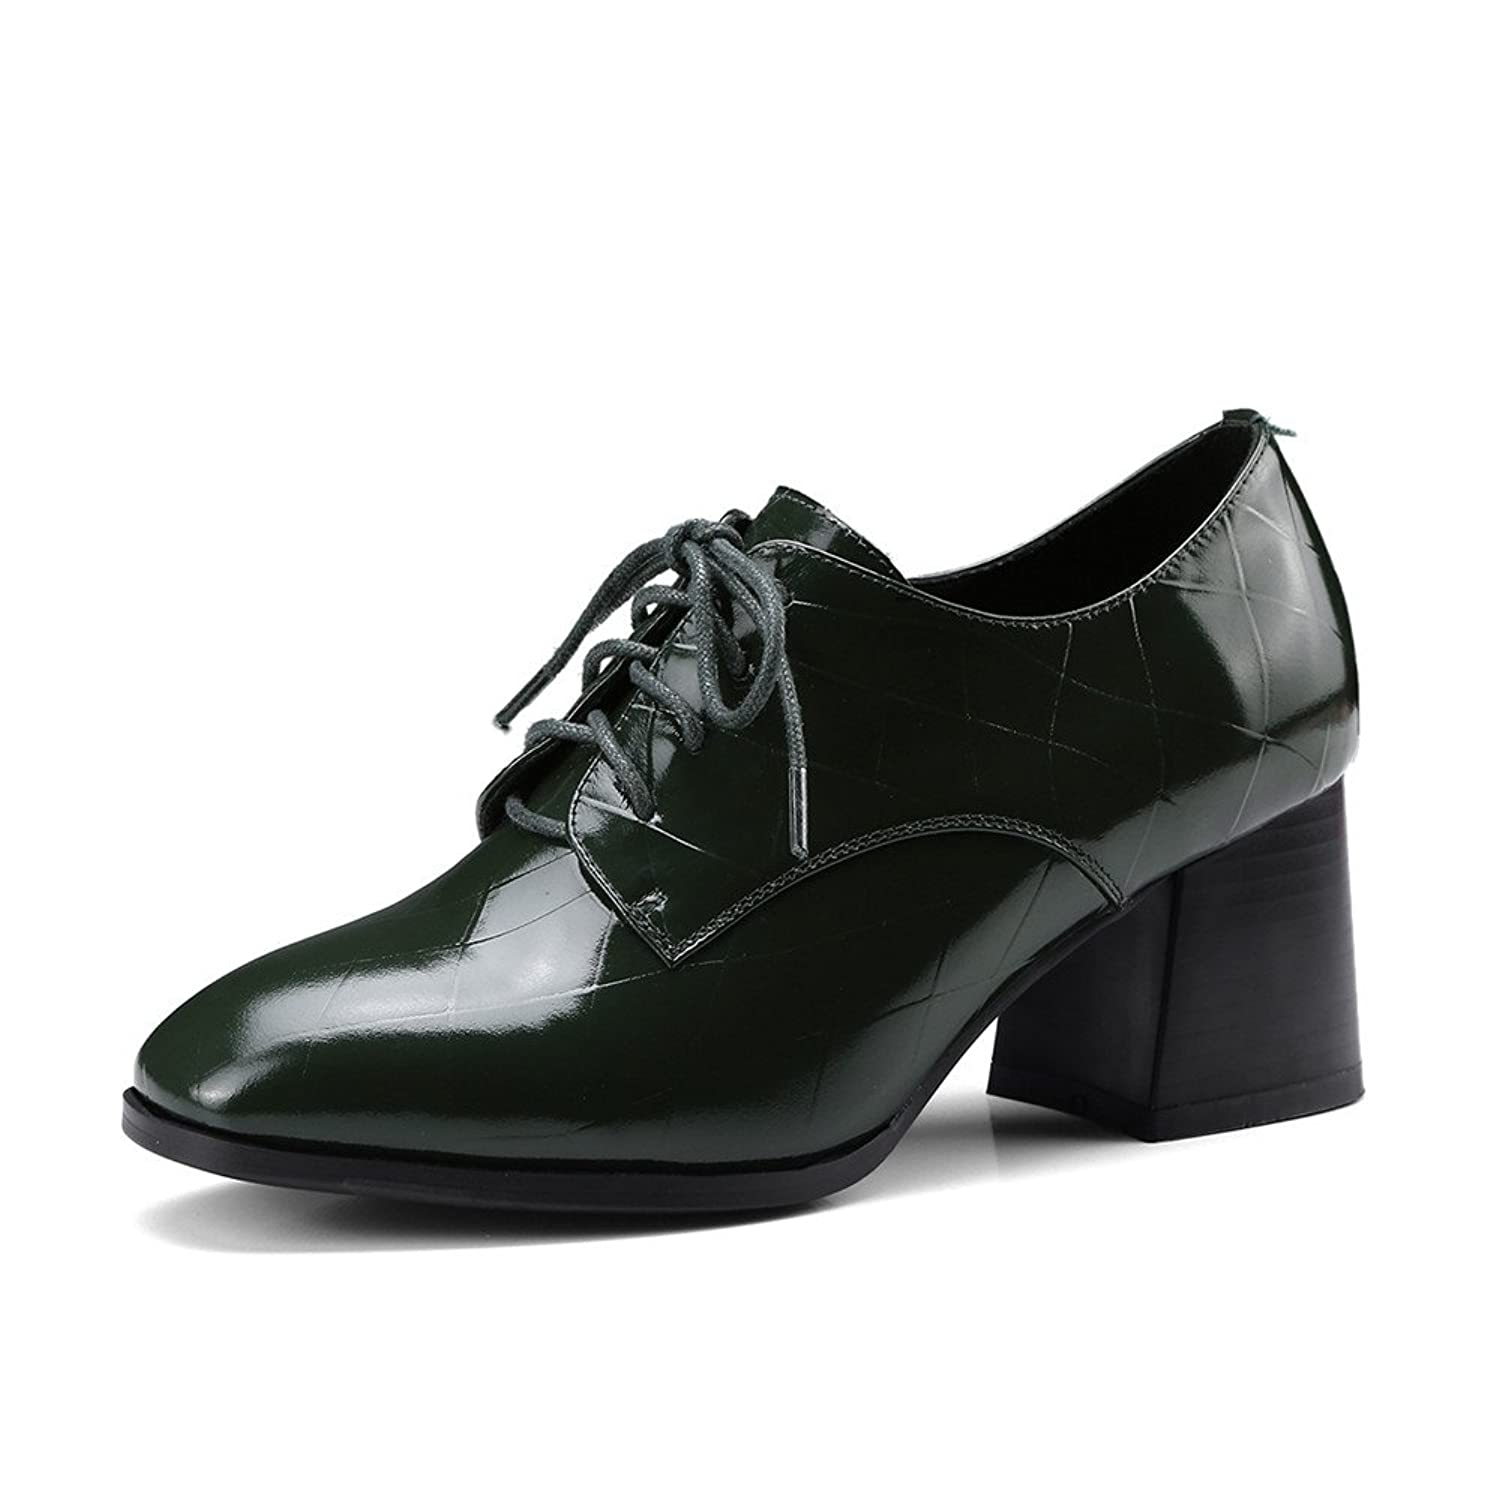 Dulce Diva Patent Leather Chunky Heel Square Toe Lace Up Oxford Shoes Women